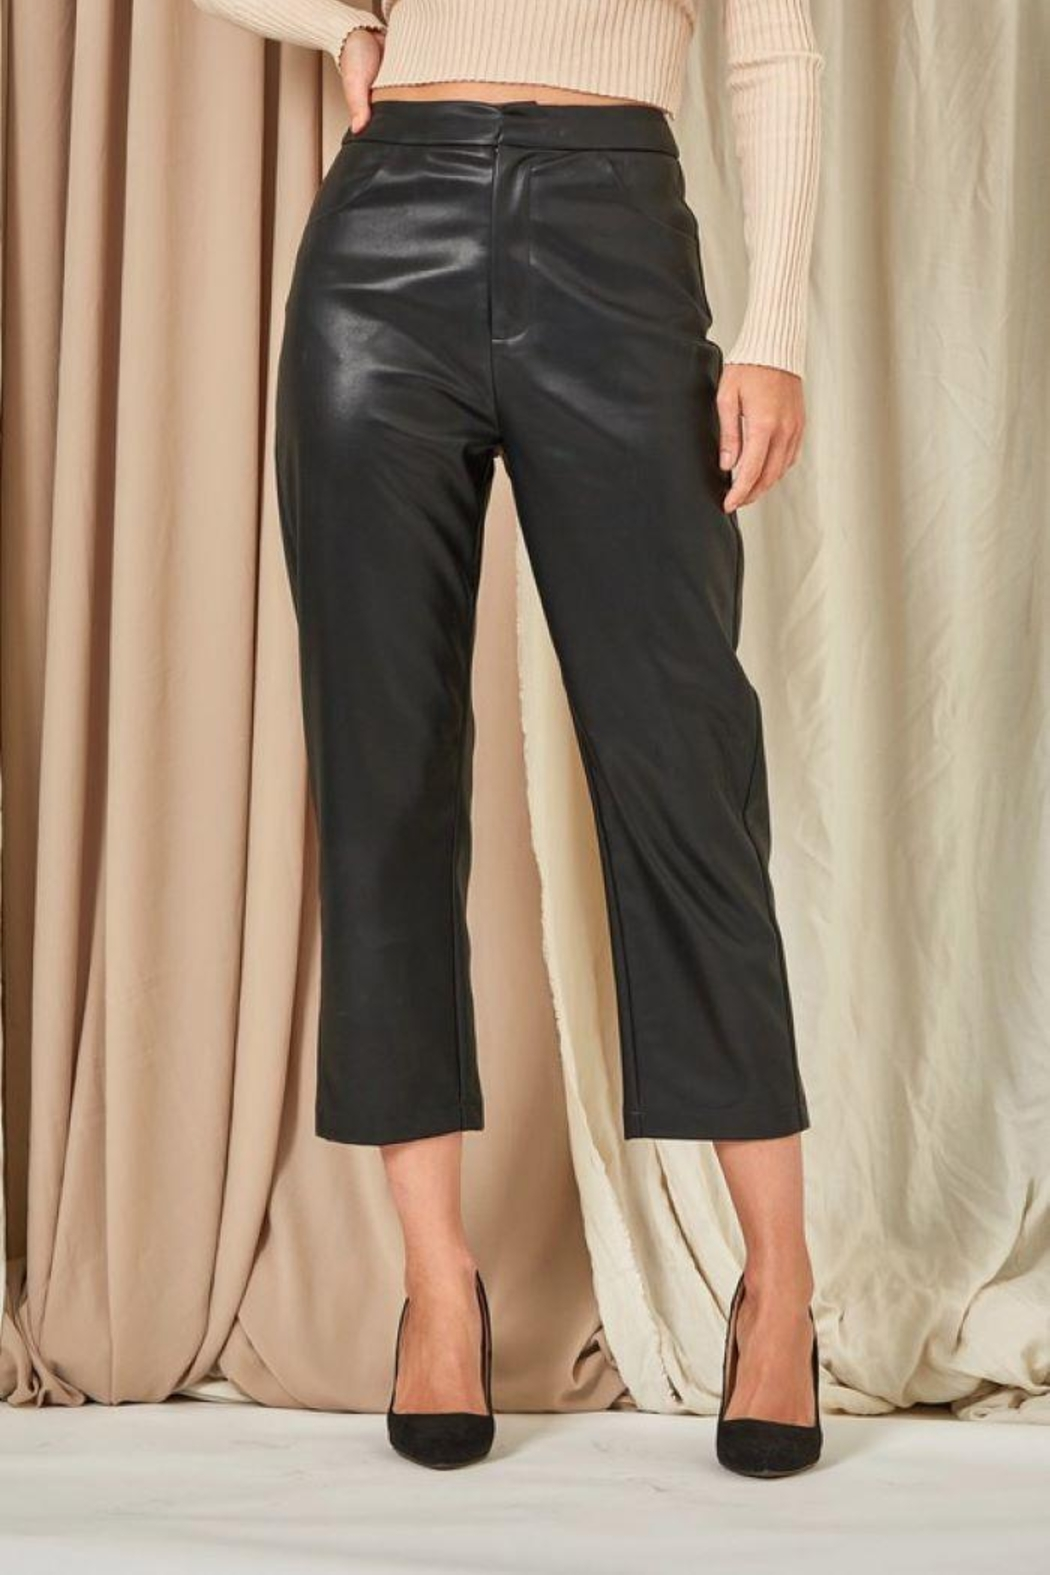 Et Clet Cropped Faux Leather Pants - Side Cropped Image